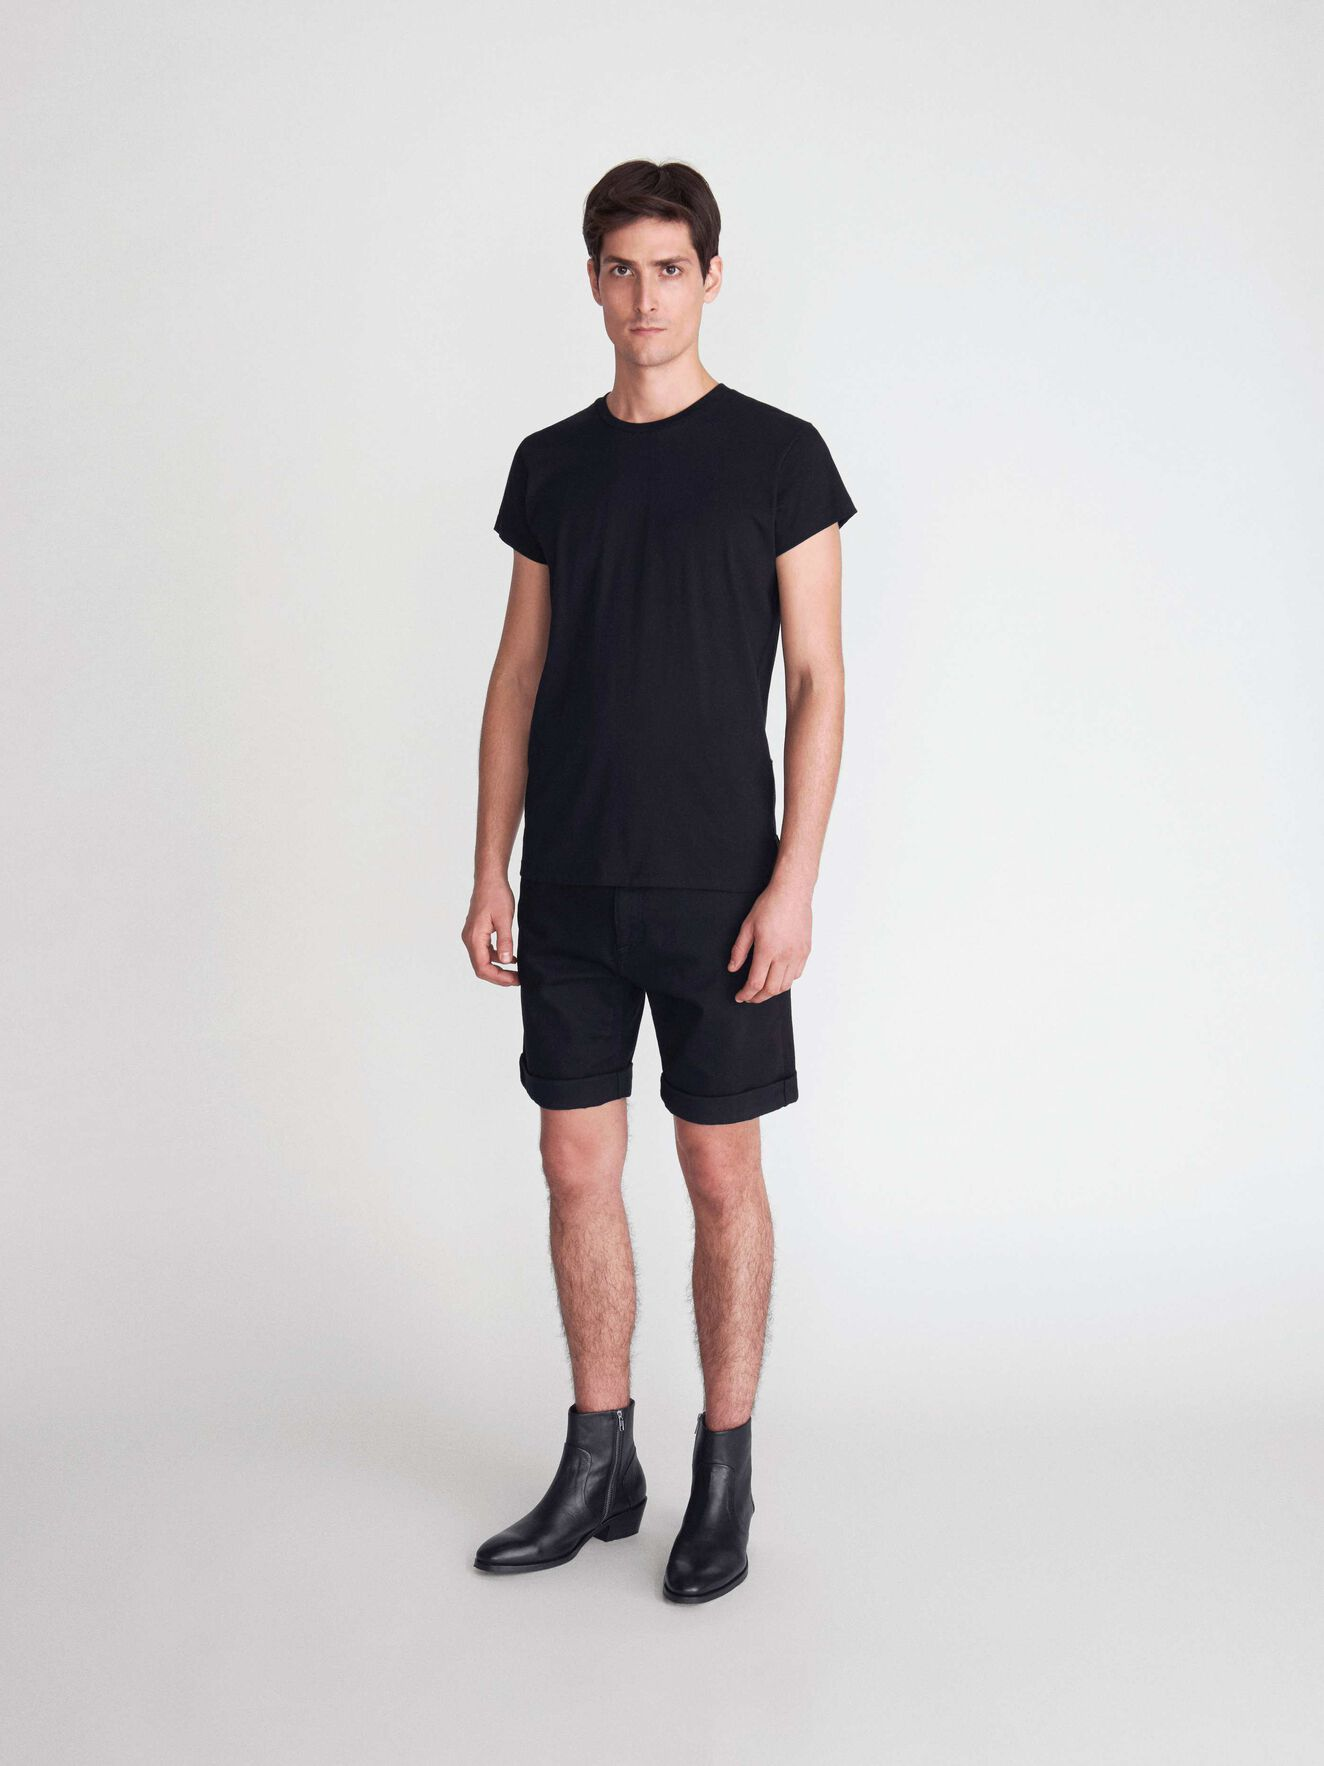 West T-Shirt in Black from Tiger of Sweden